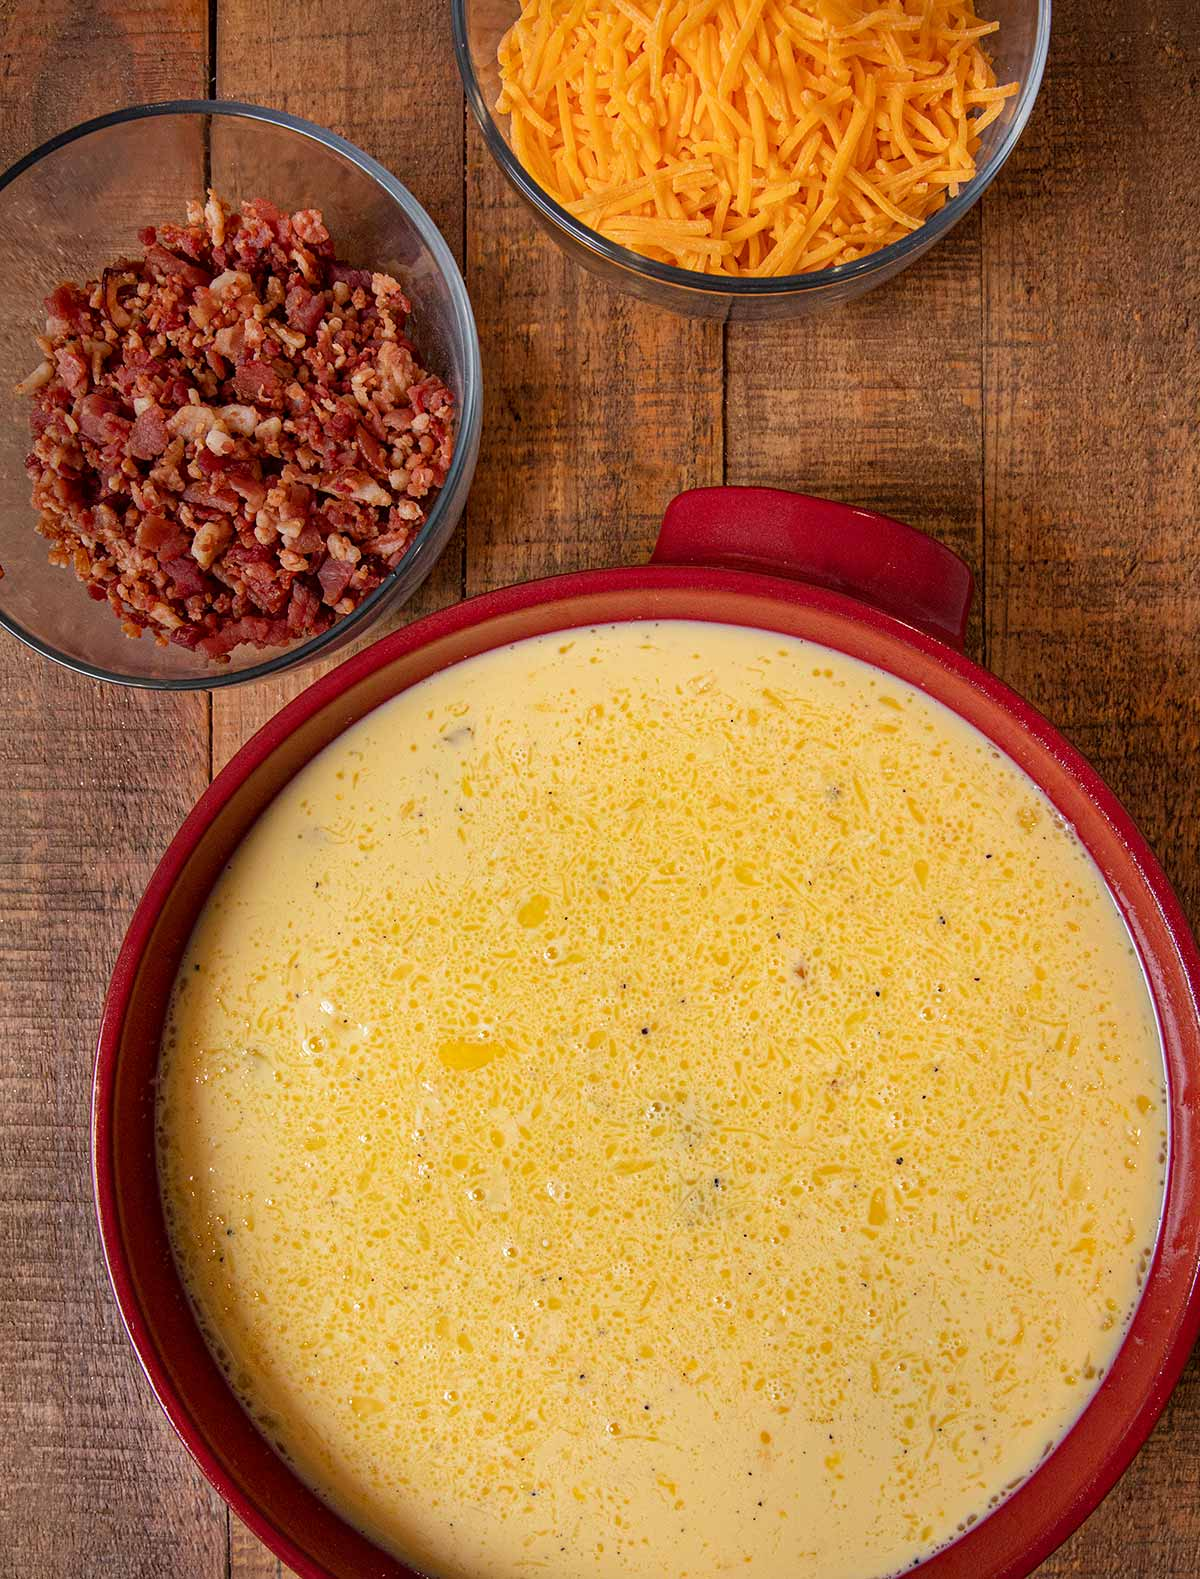 Oven Baked Cheddar Scrambled Eggs ingredients in bowls